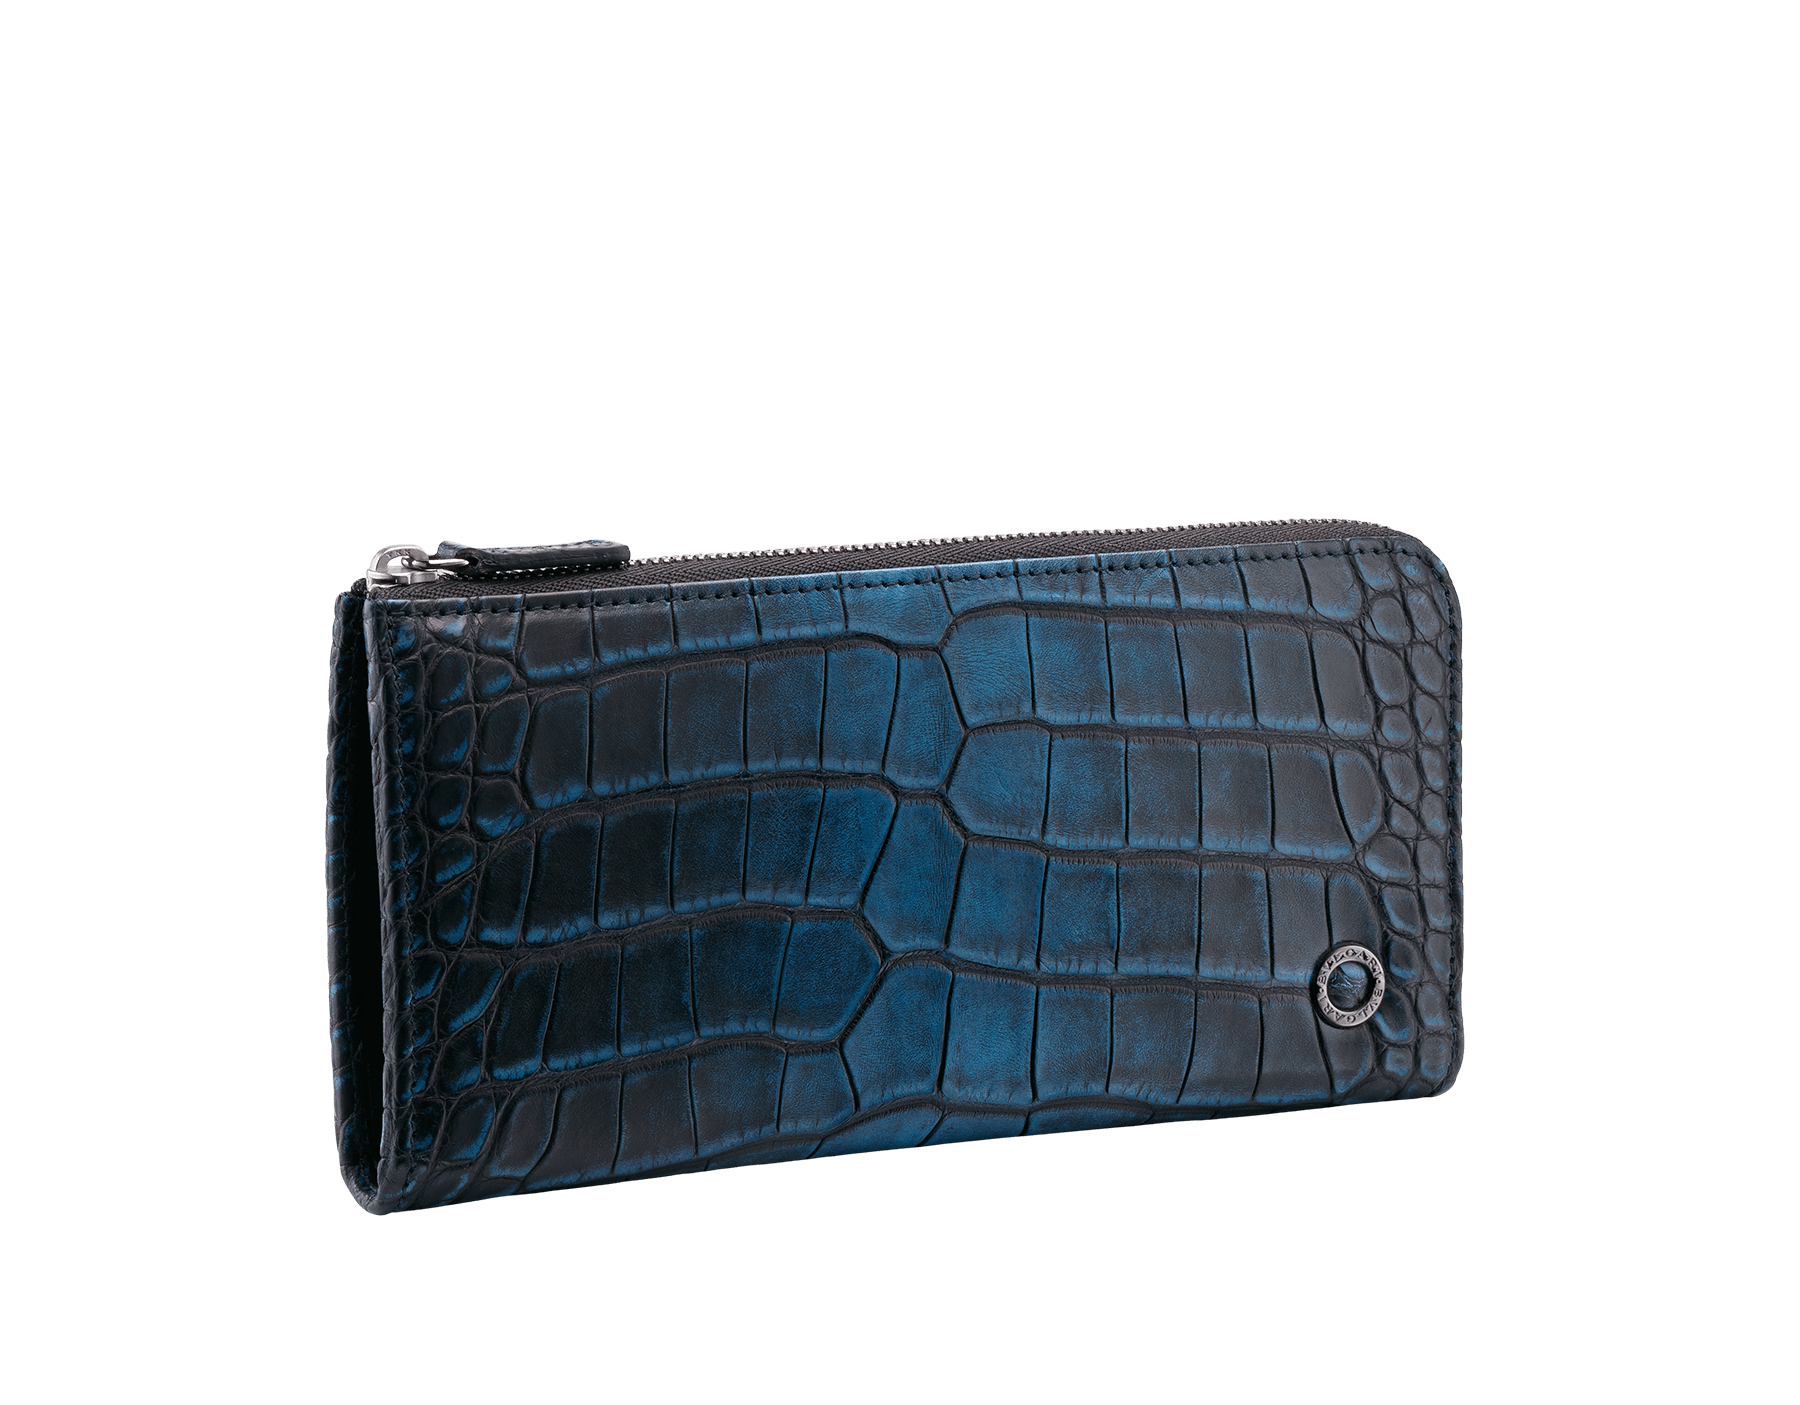 L-shaped zipped wallet in jungle green alligator skin and black smooth calf leather with brass dark ruthenium plated hardware featuring the Bulgari-Bulgari motif. BBM-WLT-M-ZIP-L-HE image 1